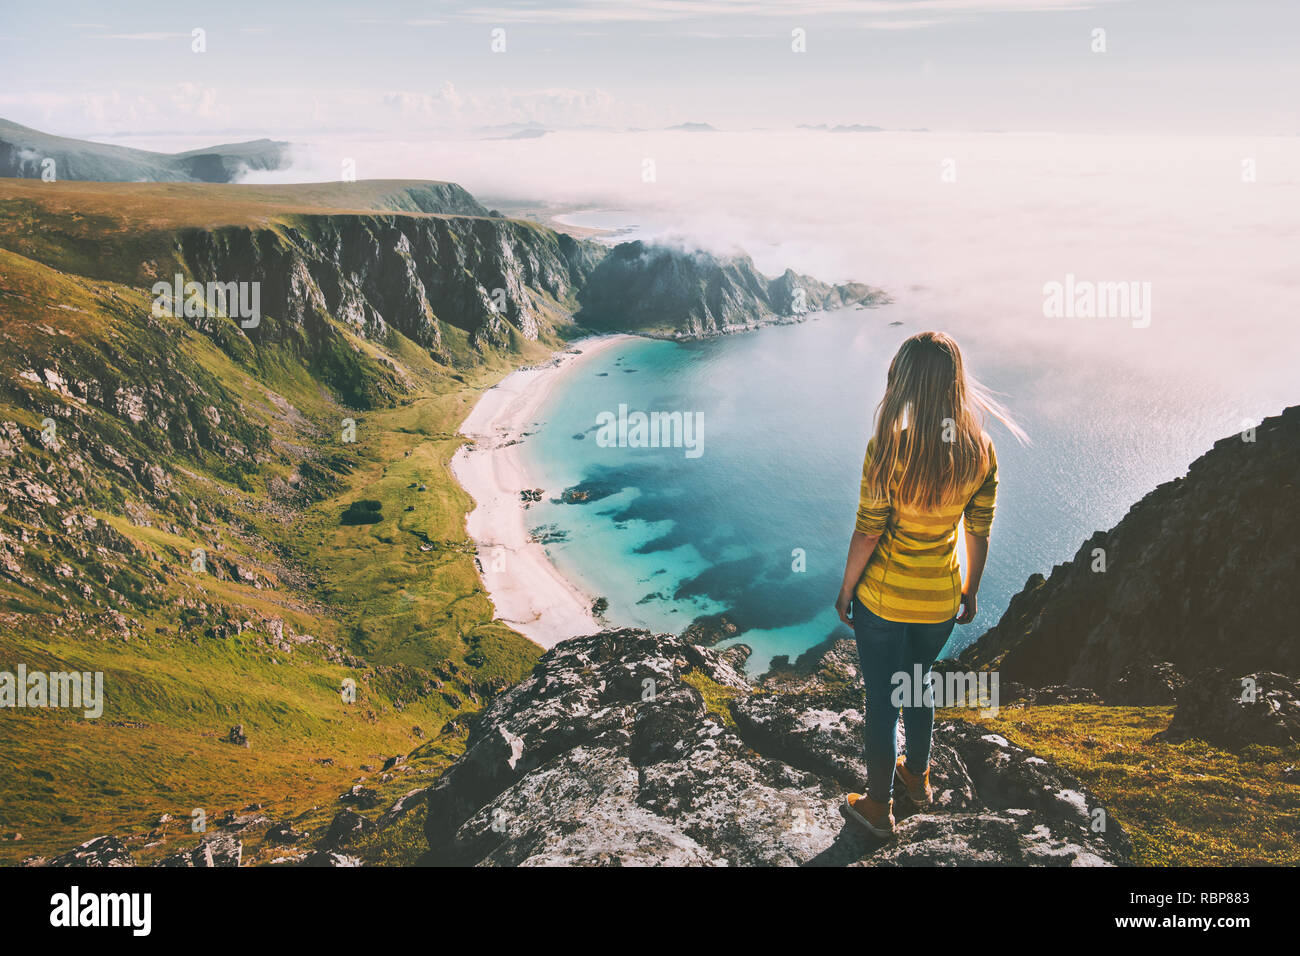 Summer travel woman tourist standing alone on mountain top over